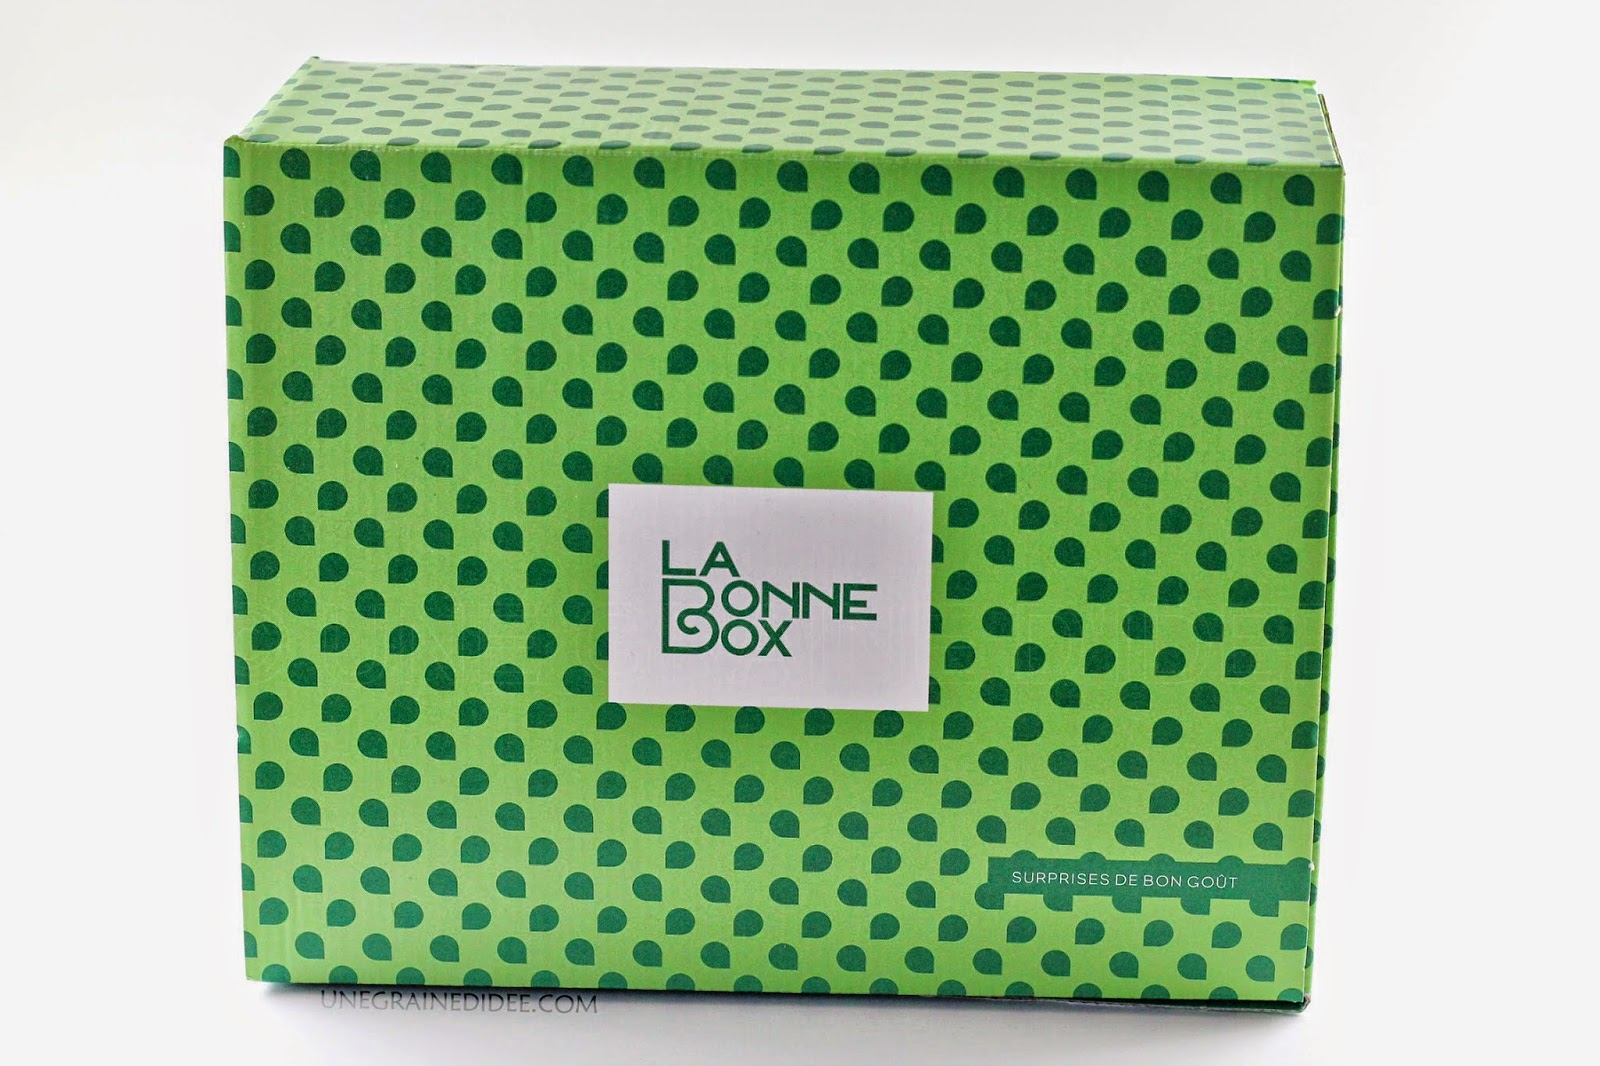 La Bonne Box Avril 2015